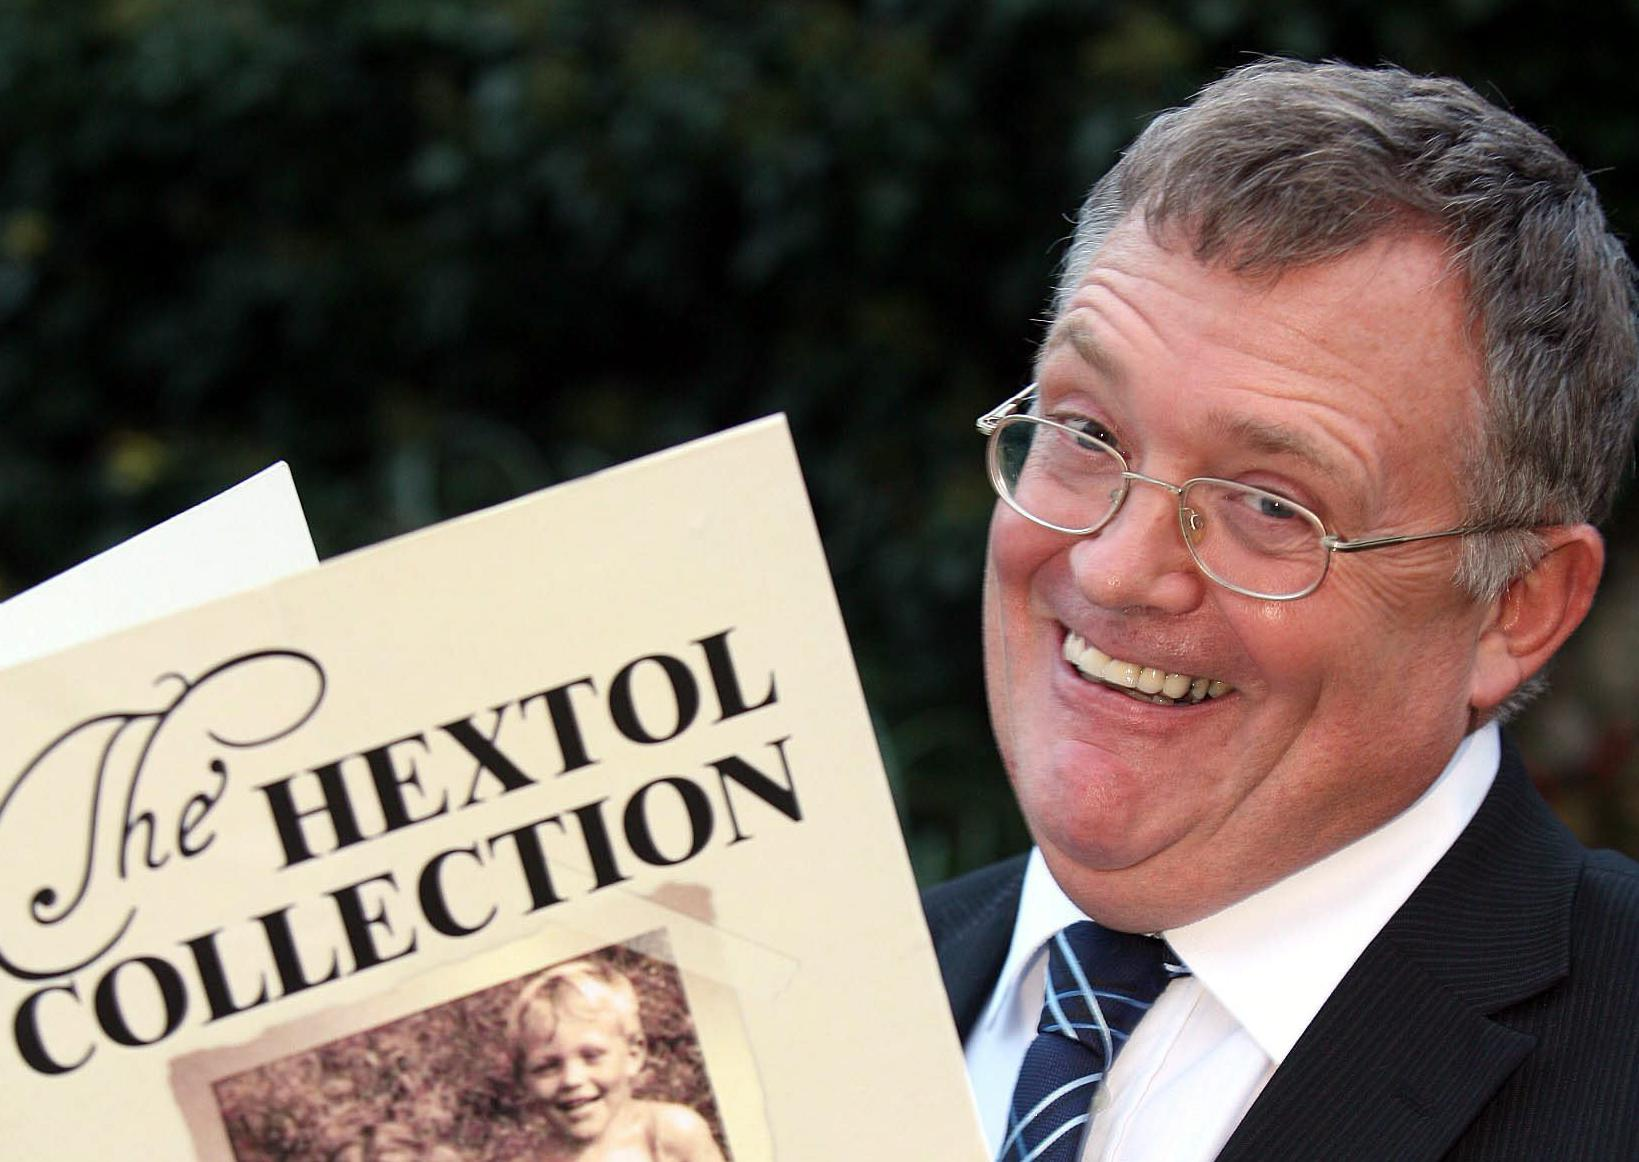 Hexham Courant deputy editor Brian Tilley with his Hextol book. D470781.